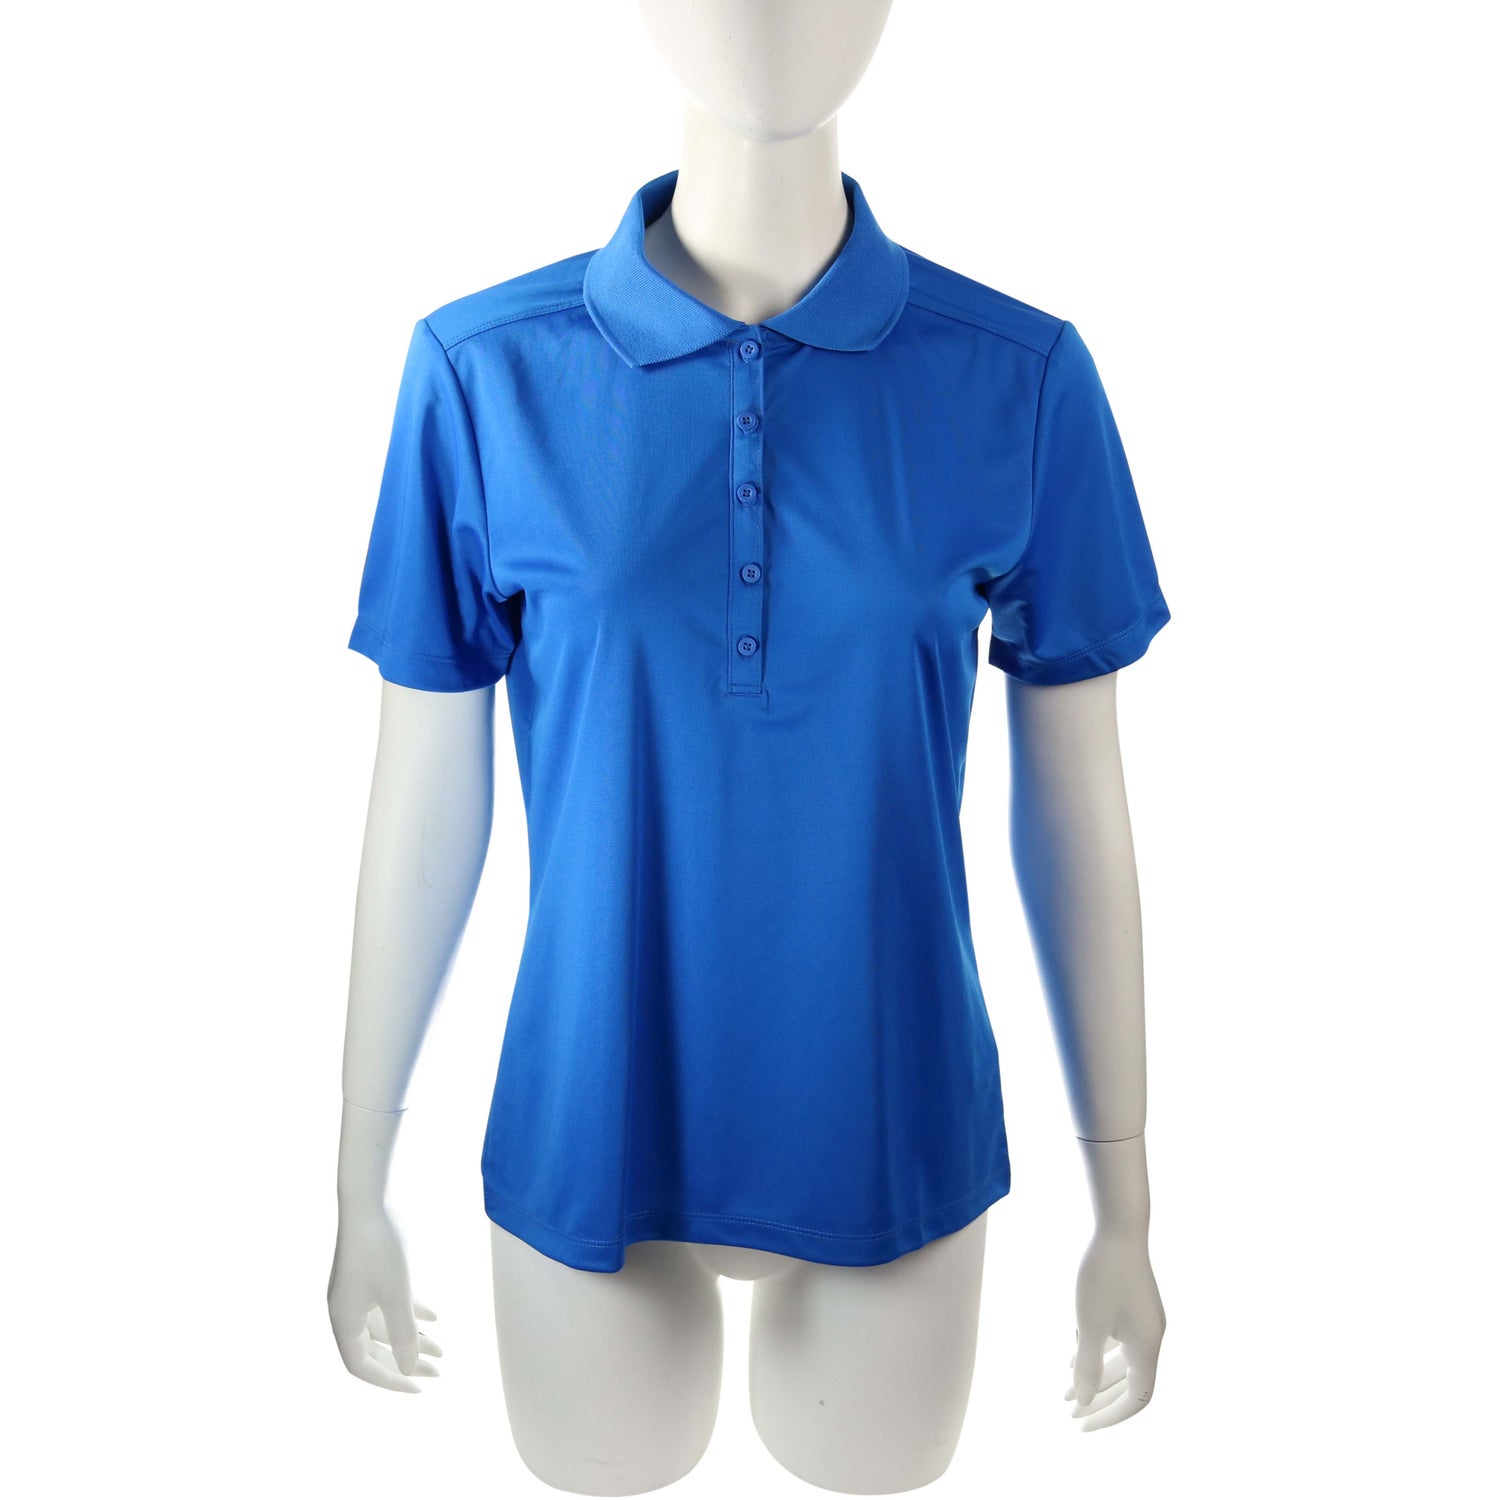 c82a77323 Embroidered Polo Shirts Cheap No Minimum | Top Mode Depot